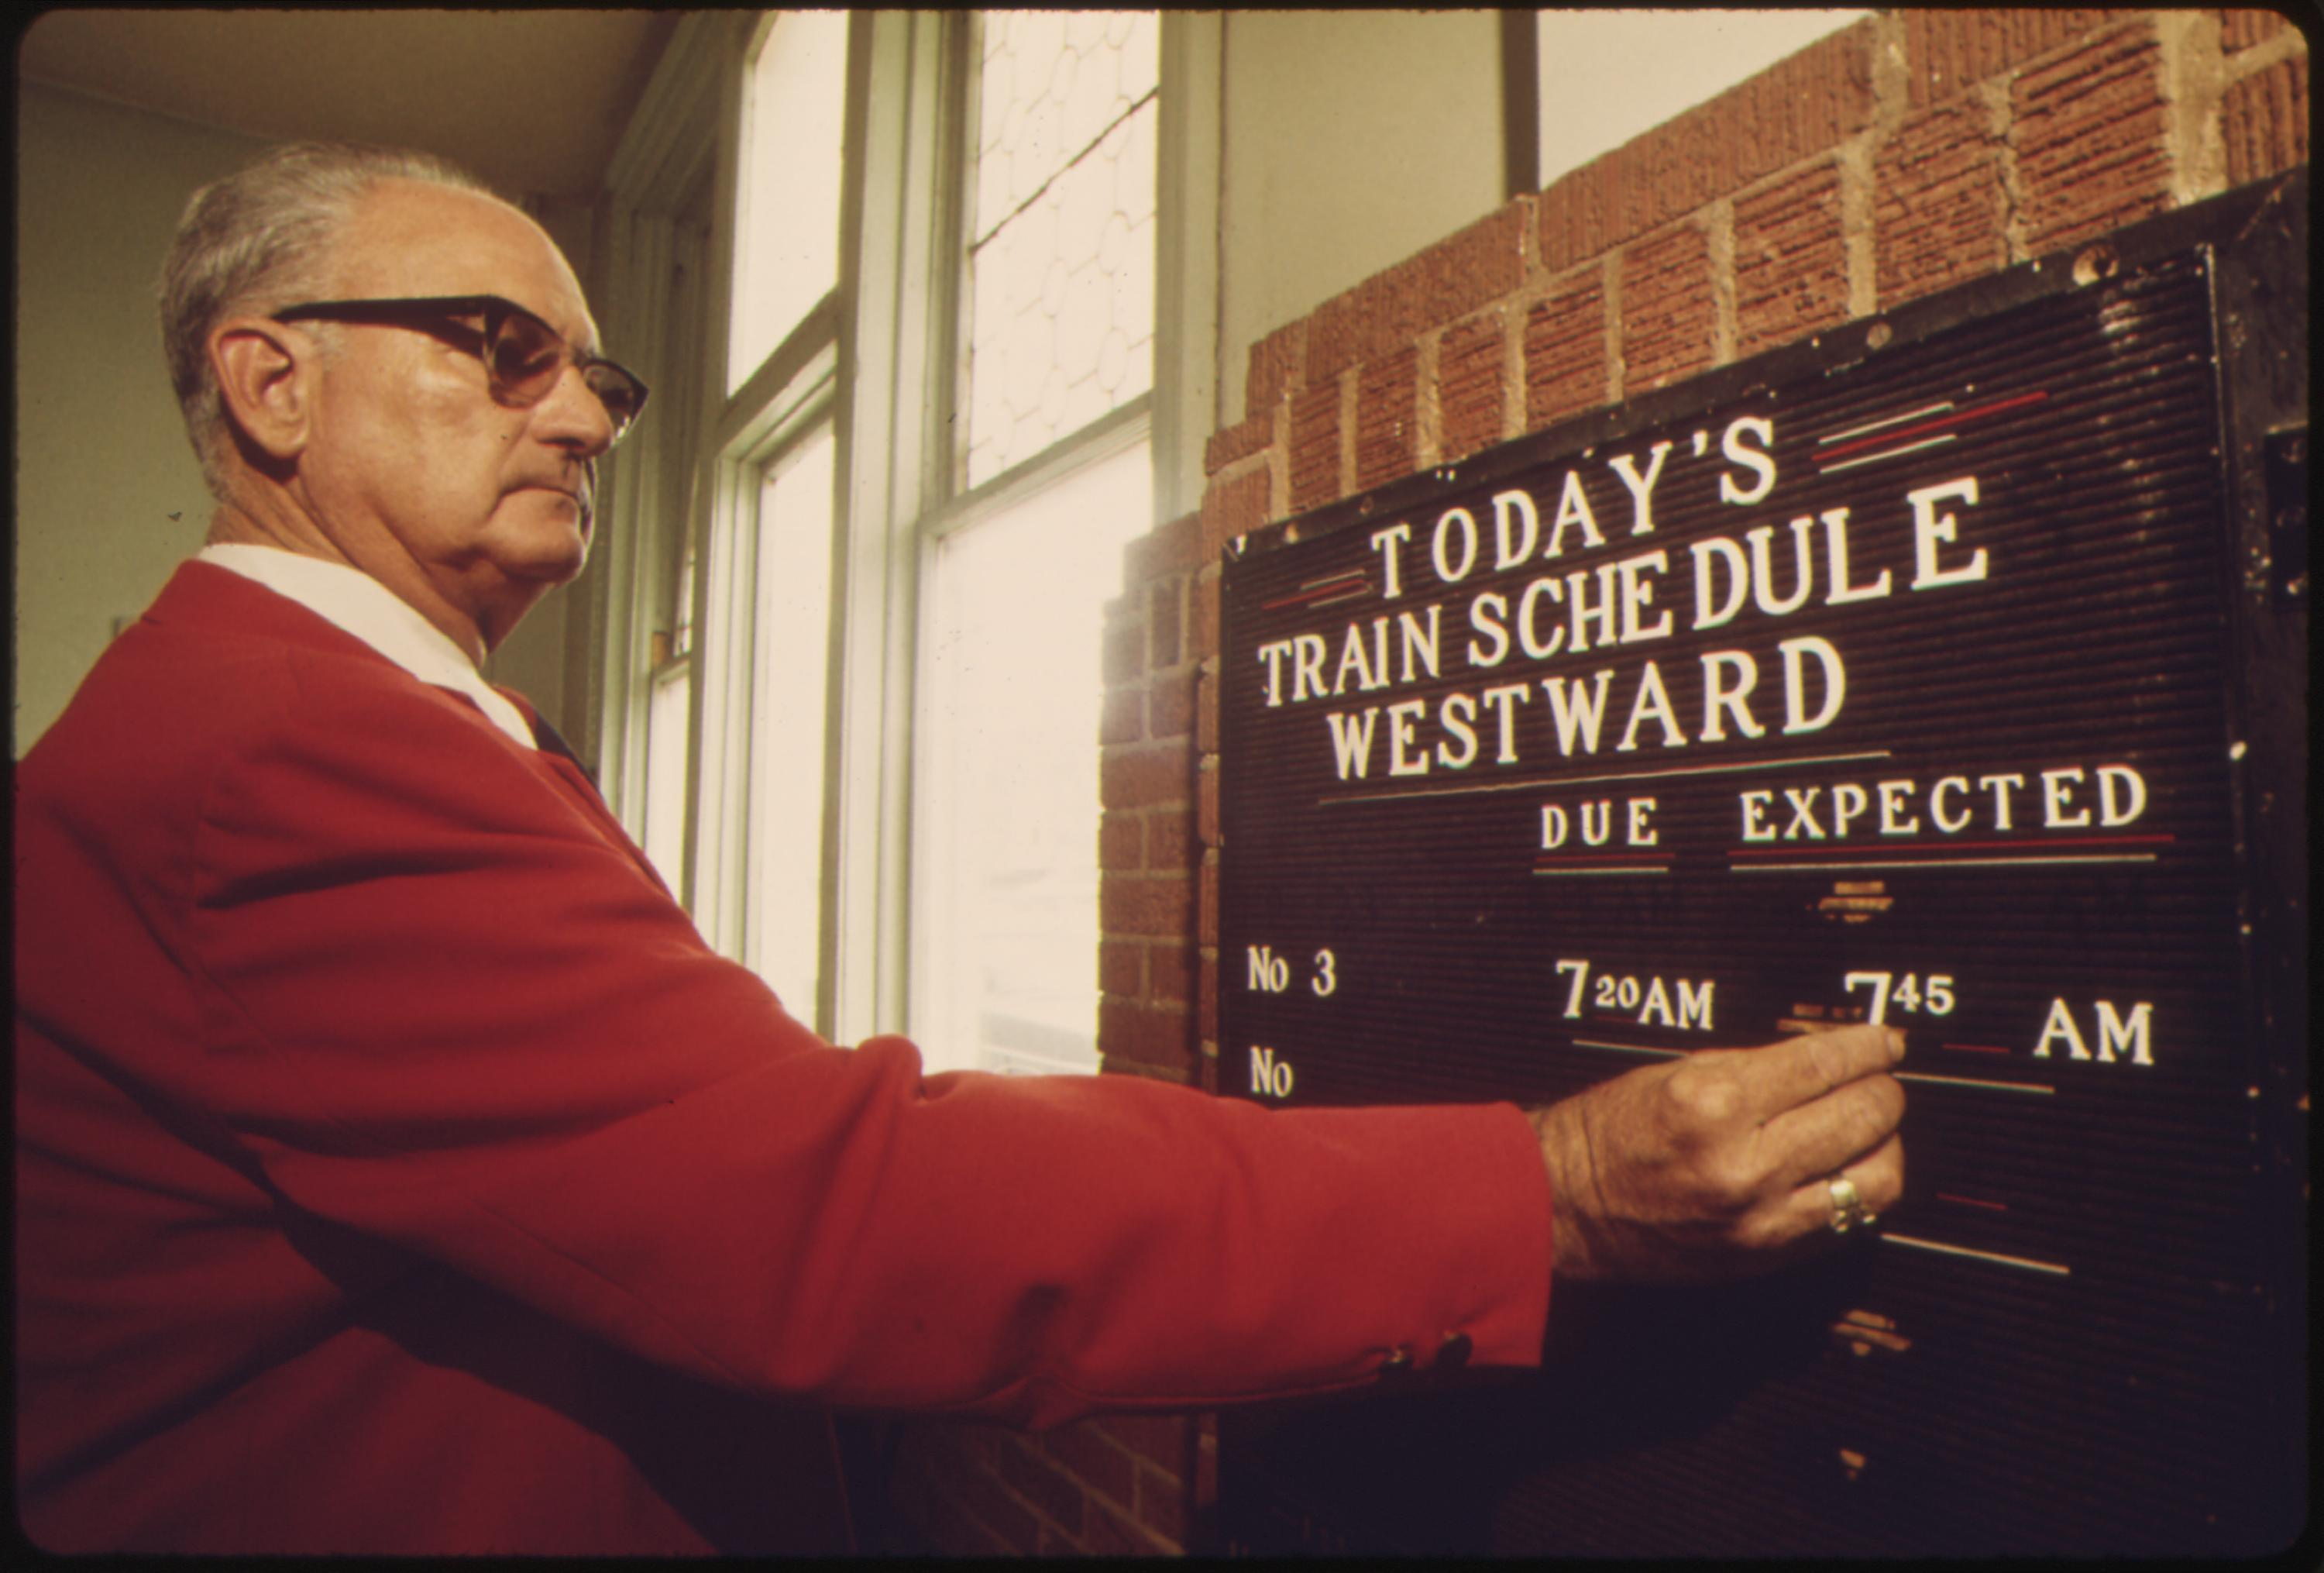 Amtrak station agent at Dodge City, Kansas, places the expected arrival time of the westbound Southwest Limited on a schedule board as part of his duties, June 1974